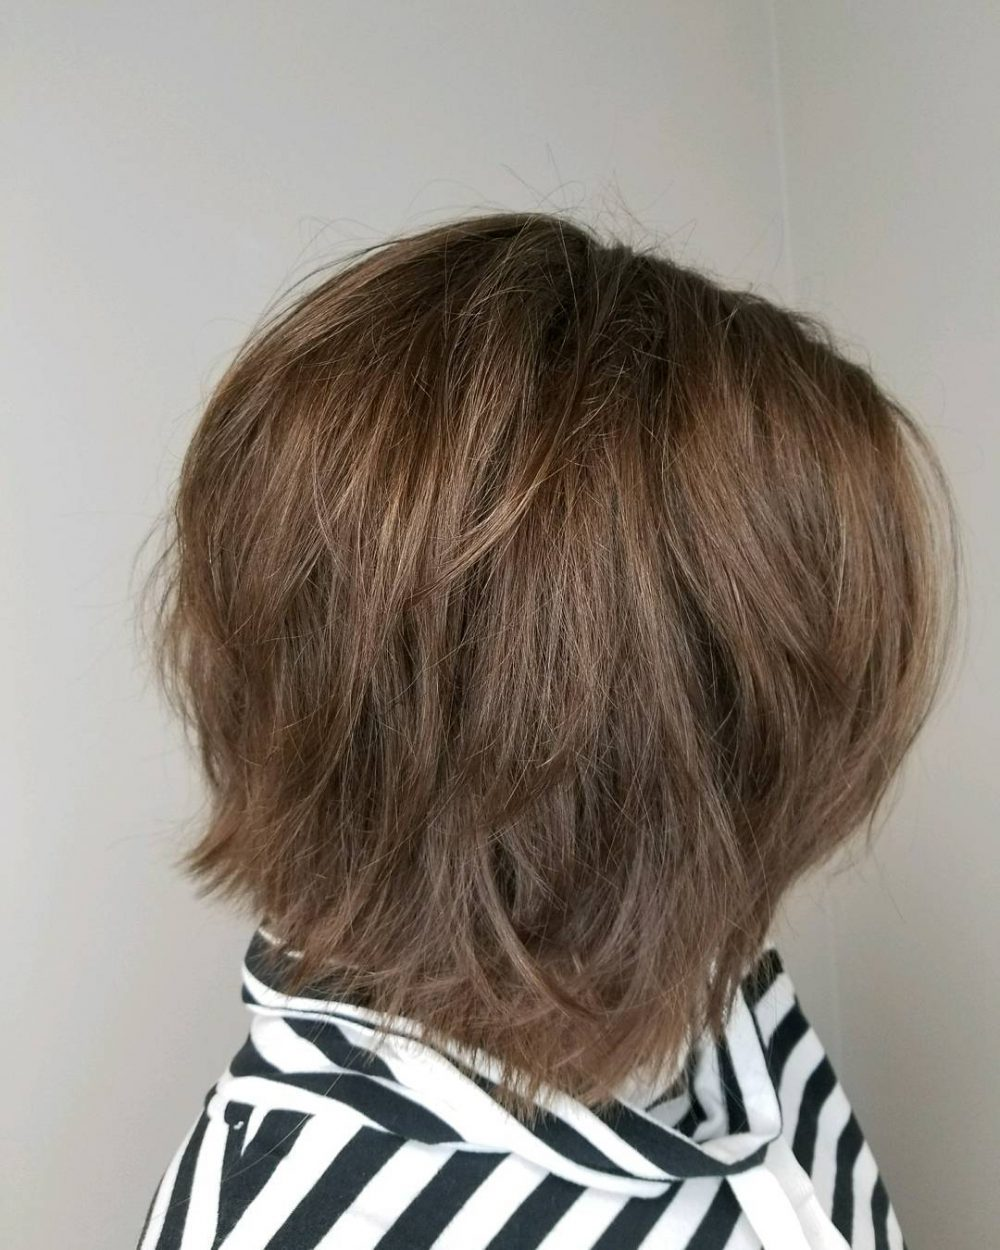 Mid-Length Textured Bob hairstyle